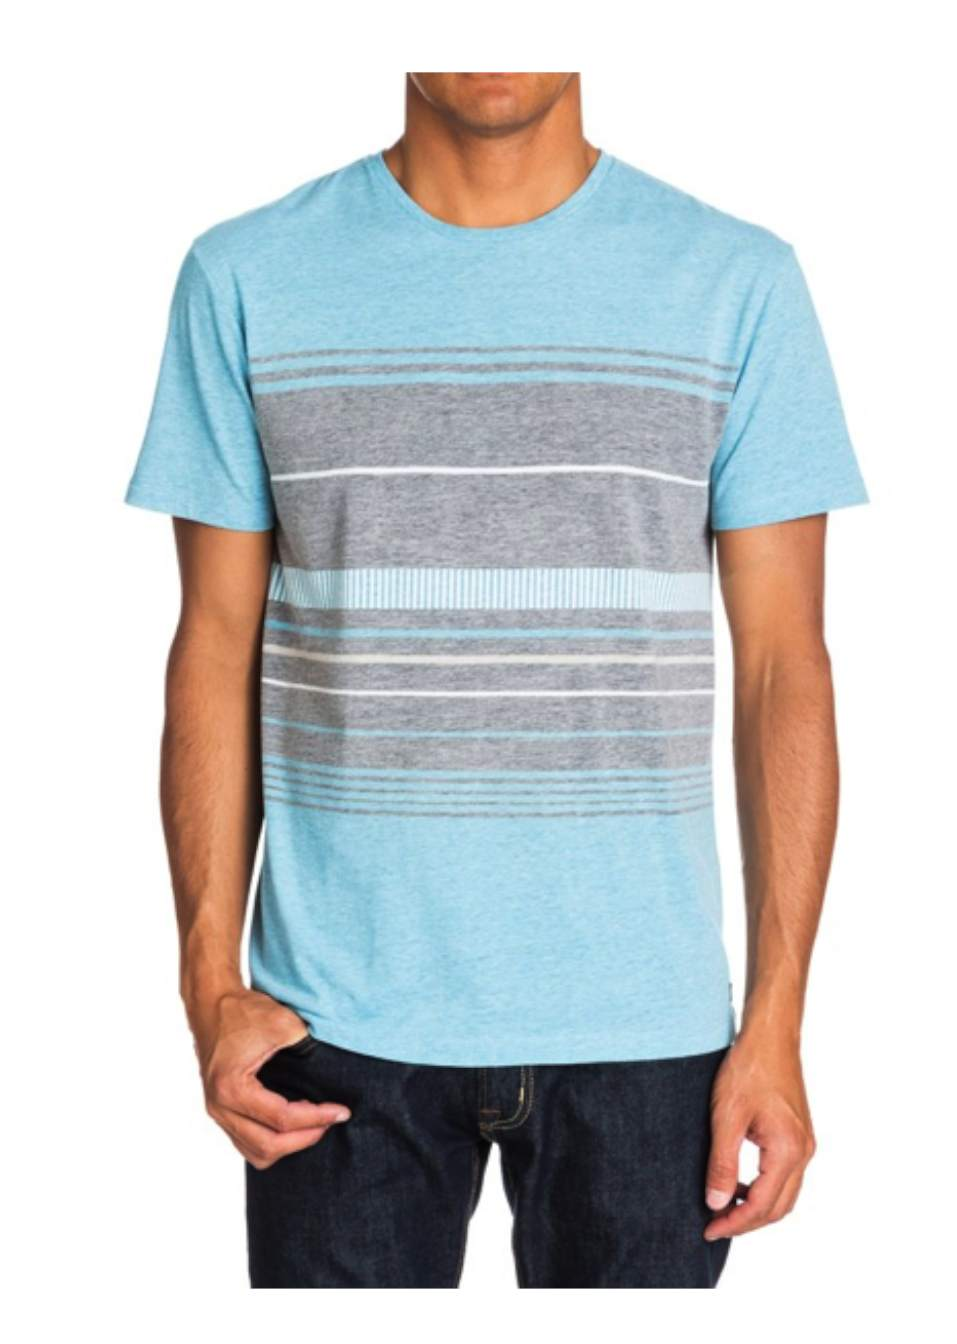 QUIKSILVER TSHIRT LEWIS - LM BOARD STORE